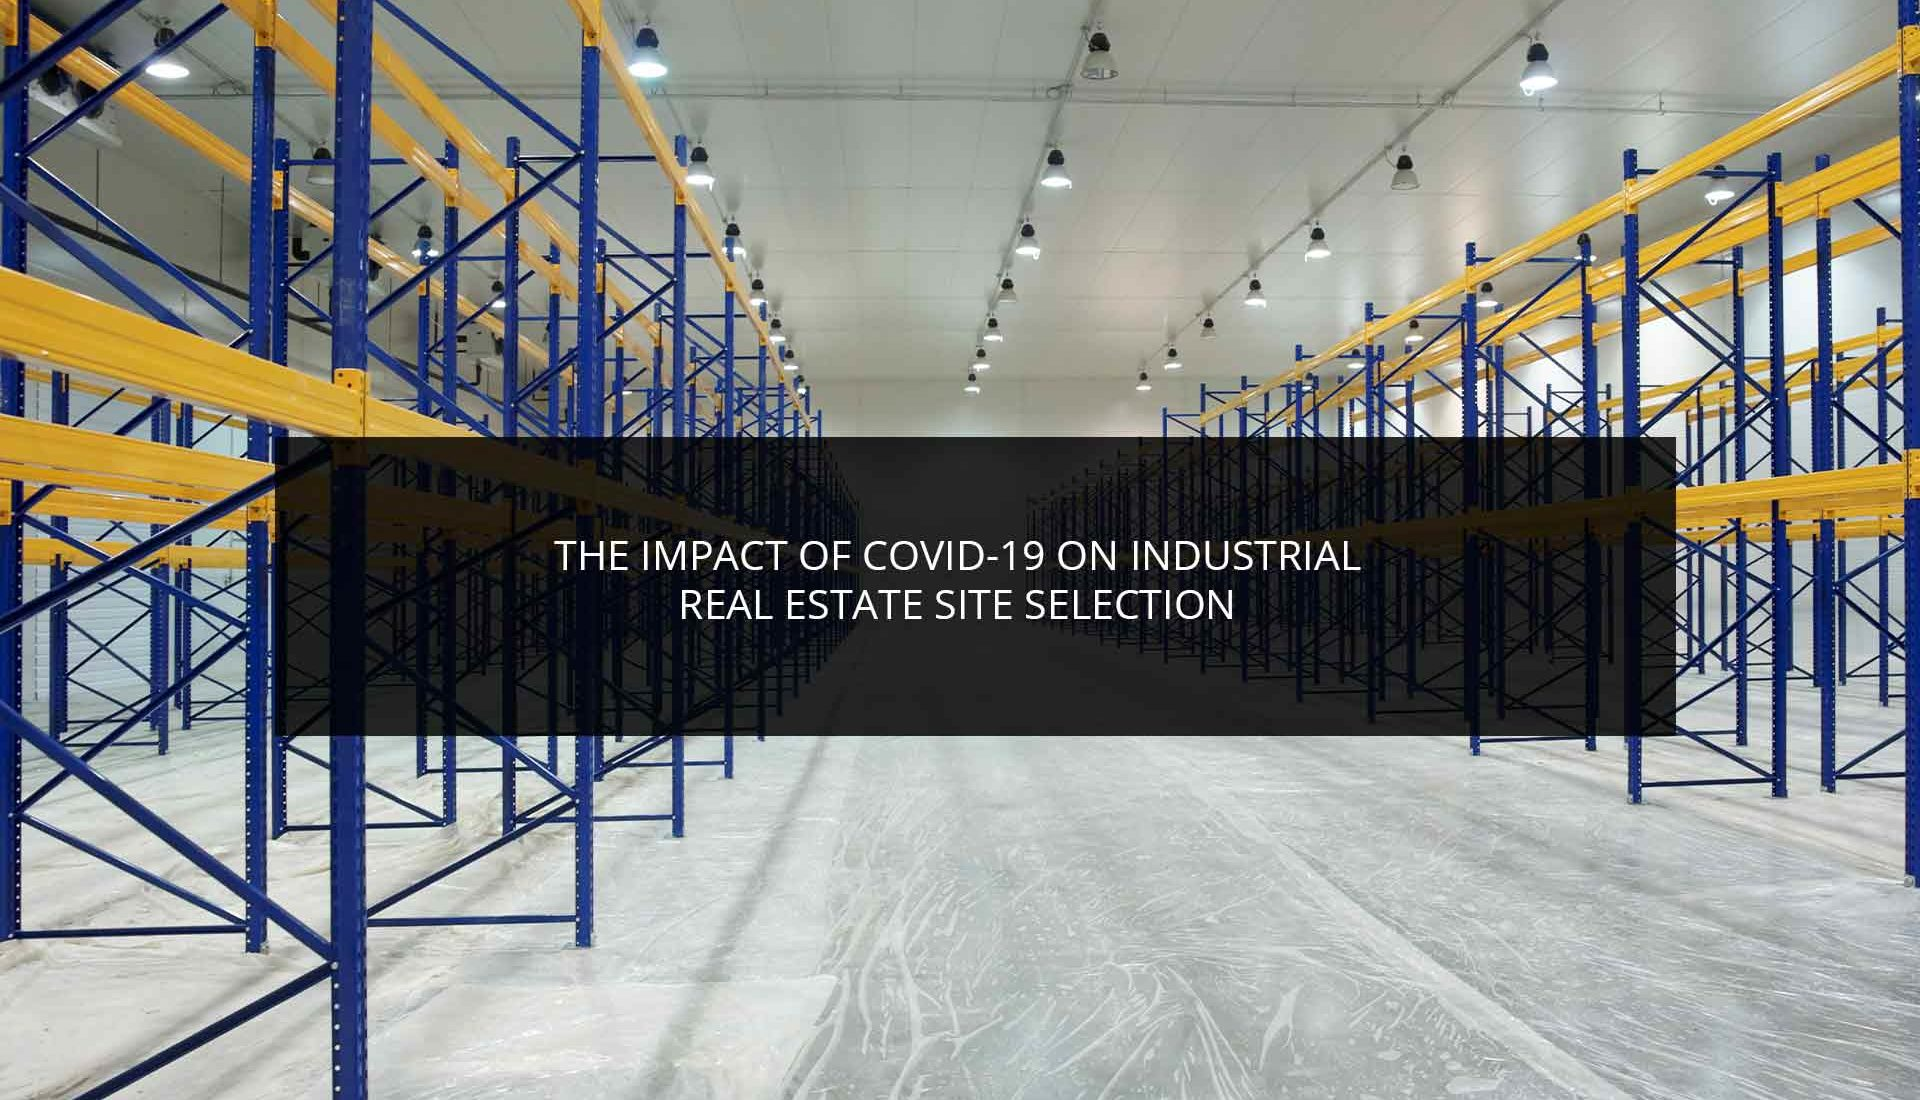 The Impact of COVID-19 on Industrial Real Estate Site Selection